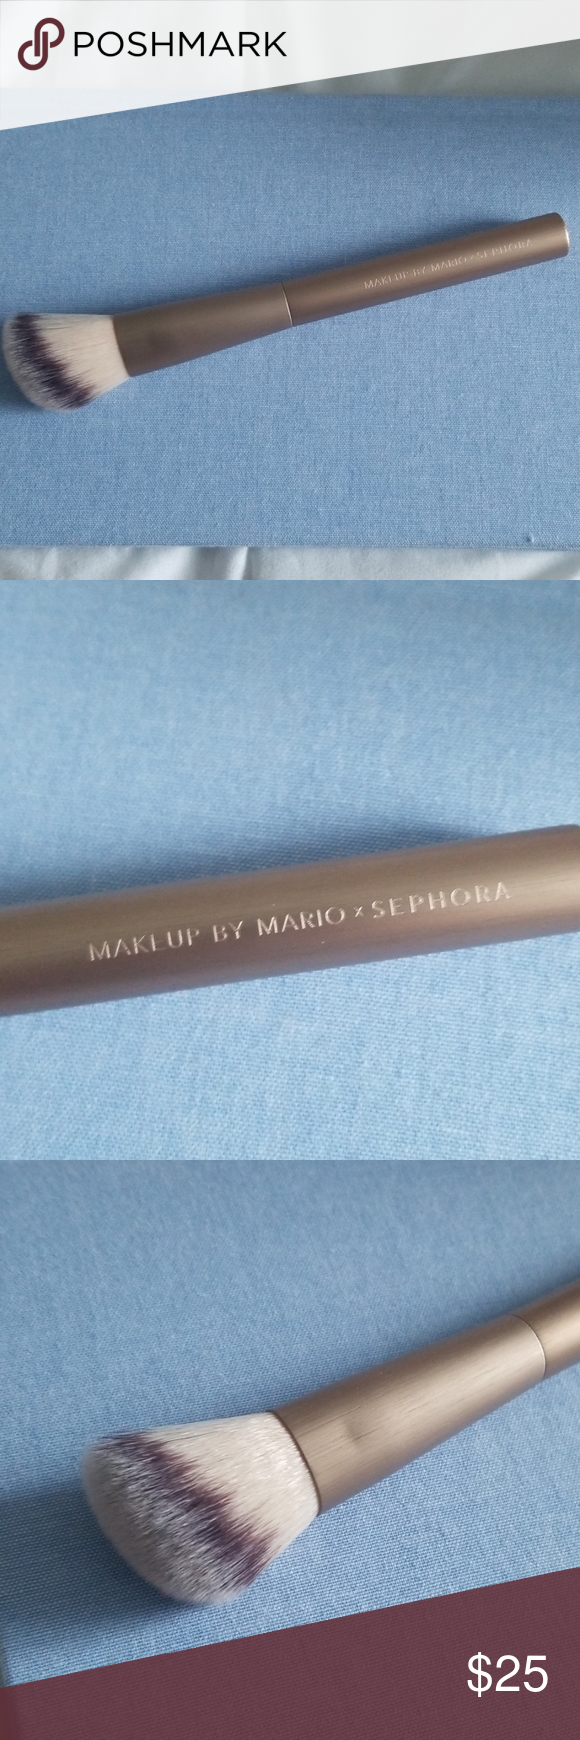 ️Makeup by Mario x Sephora Contour Brush NWT in 2020